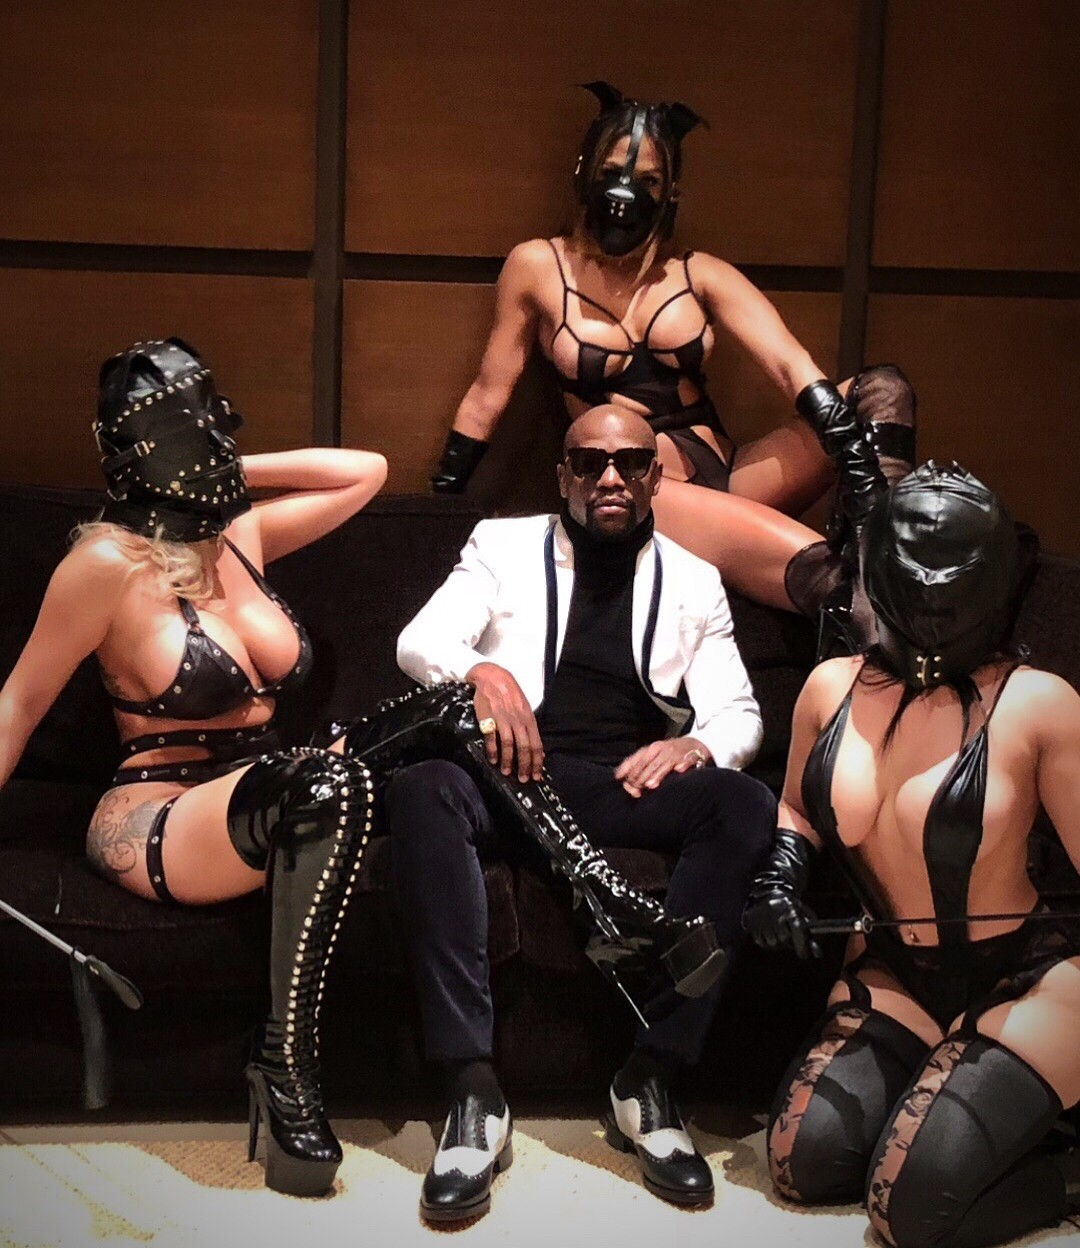 Floyd Mayweather Poses With Three Scantily Clad Women Wearing Leather Masks (5)